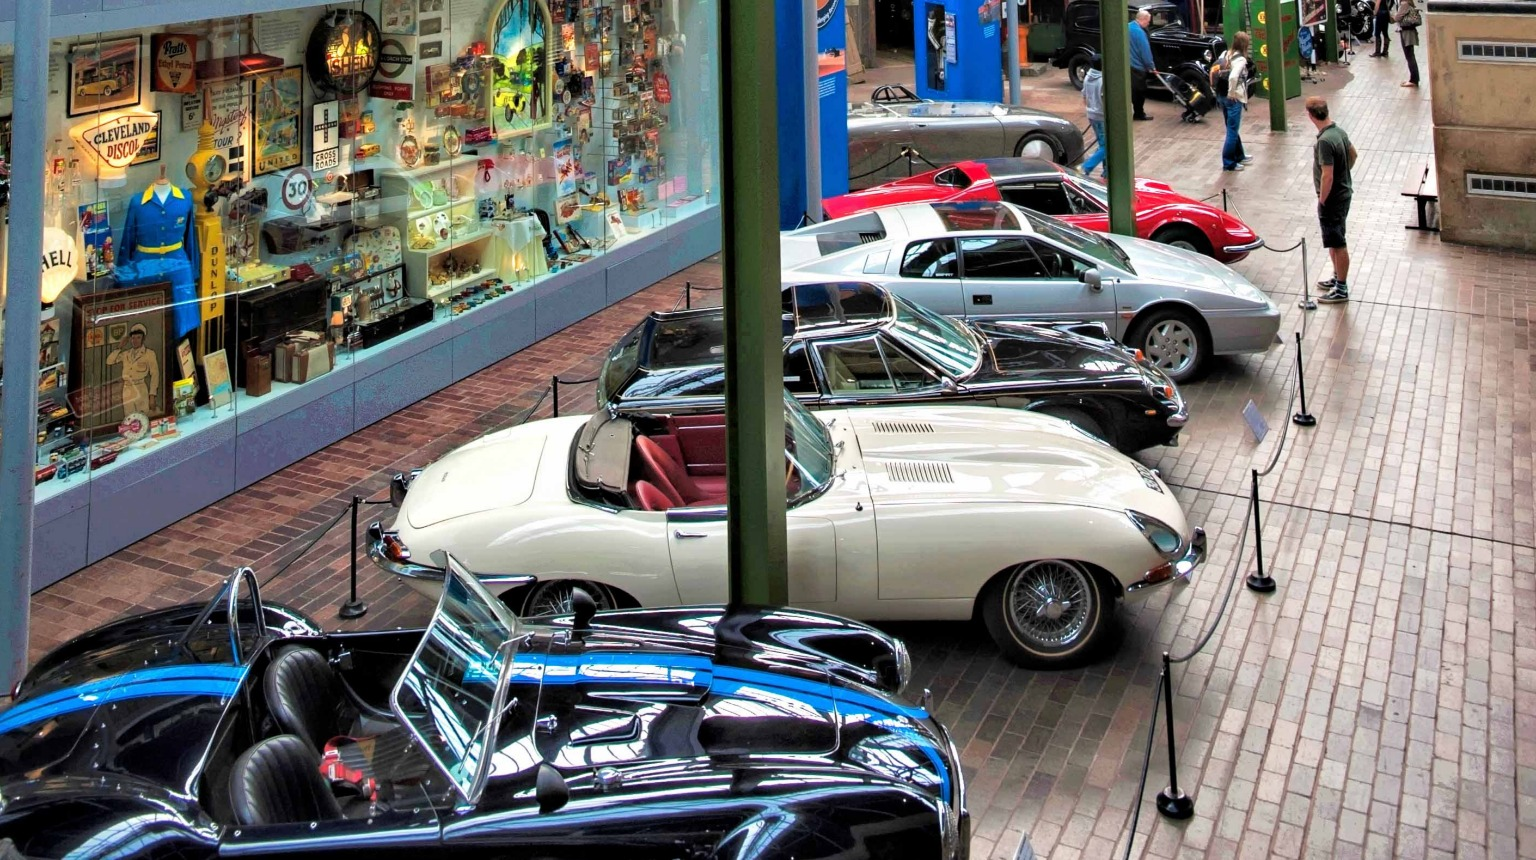 Visitors can enjoy a birds eye view of the collection as they take a high level ride through the National Motor Museum on the Monorail.